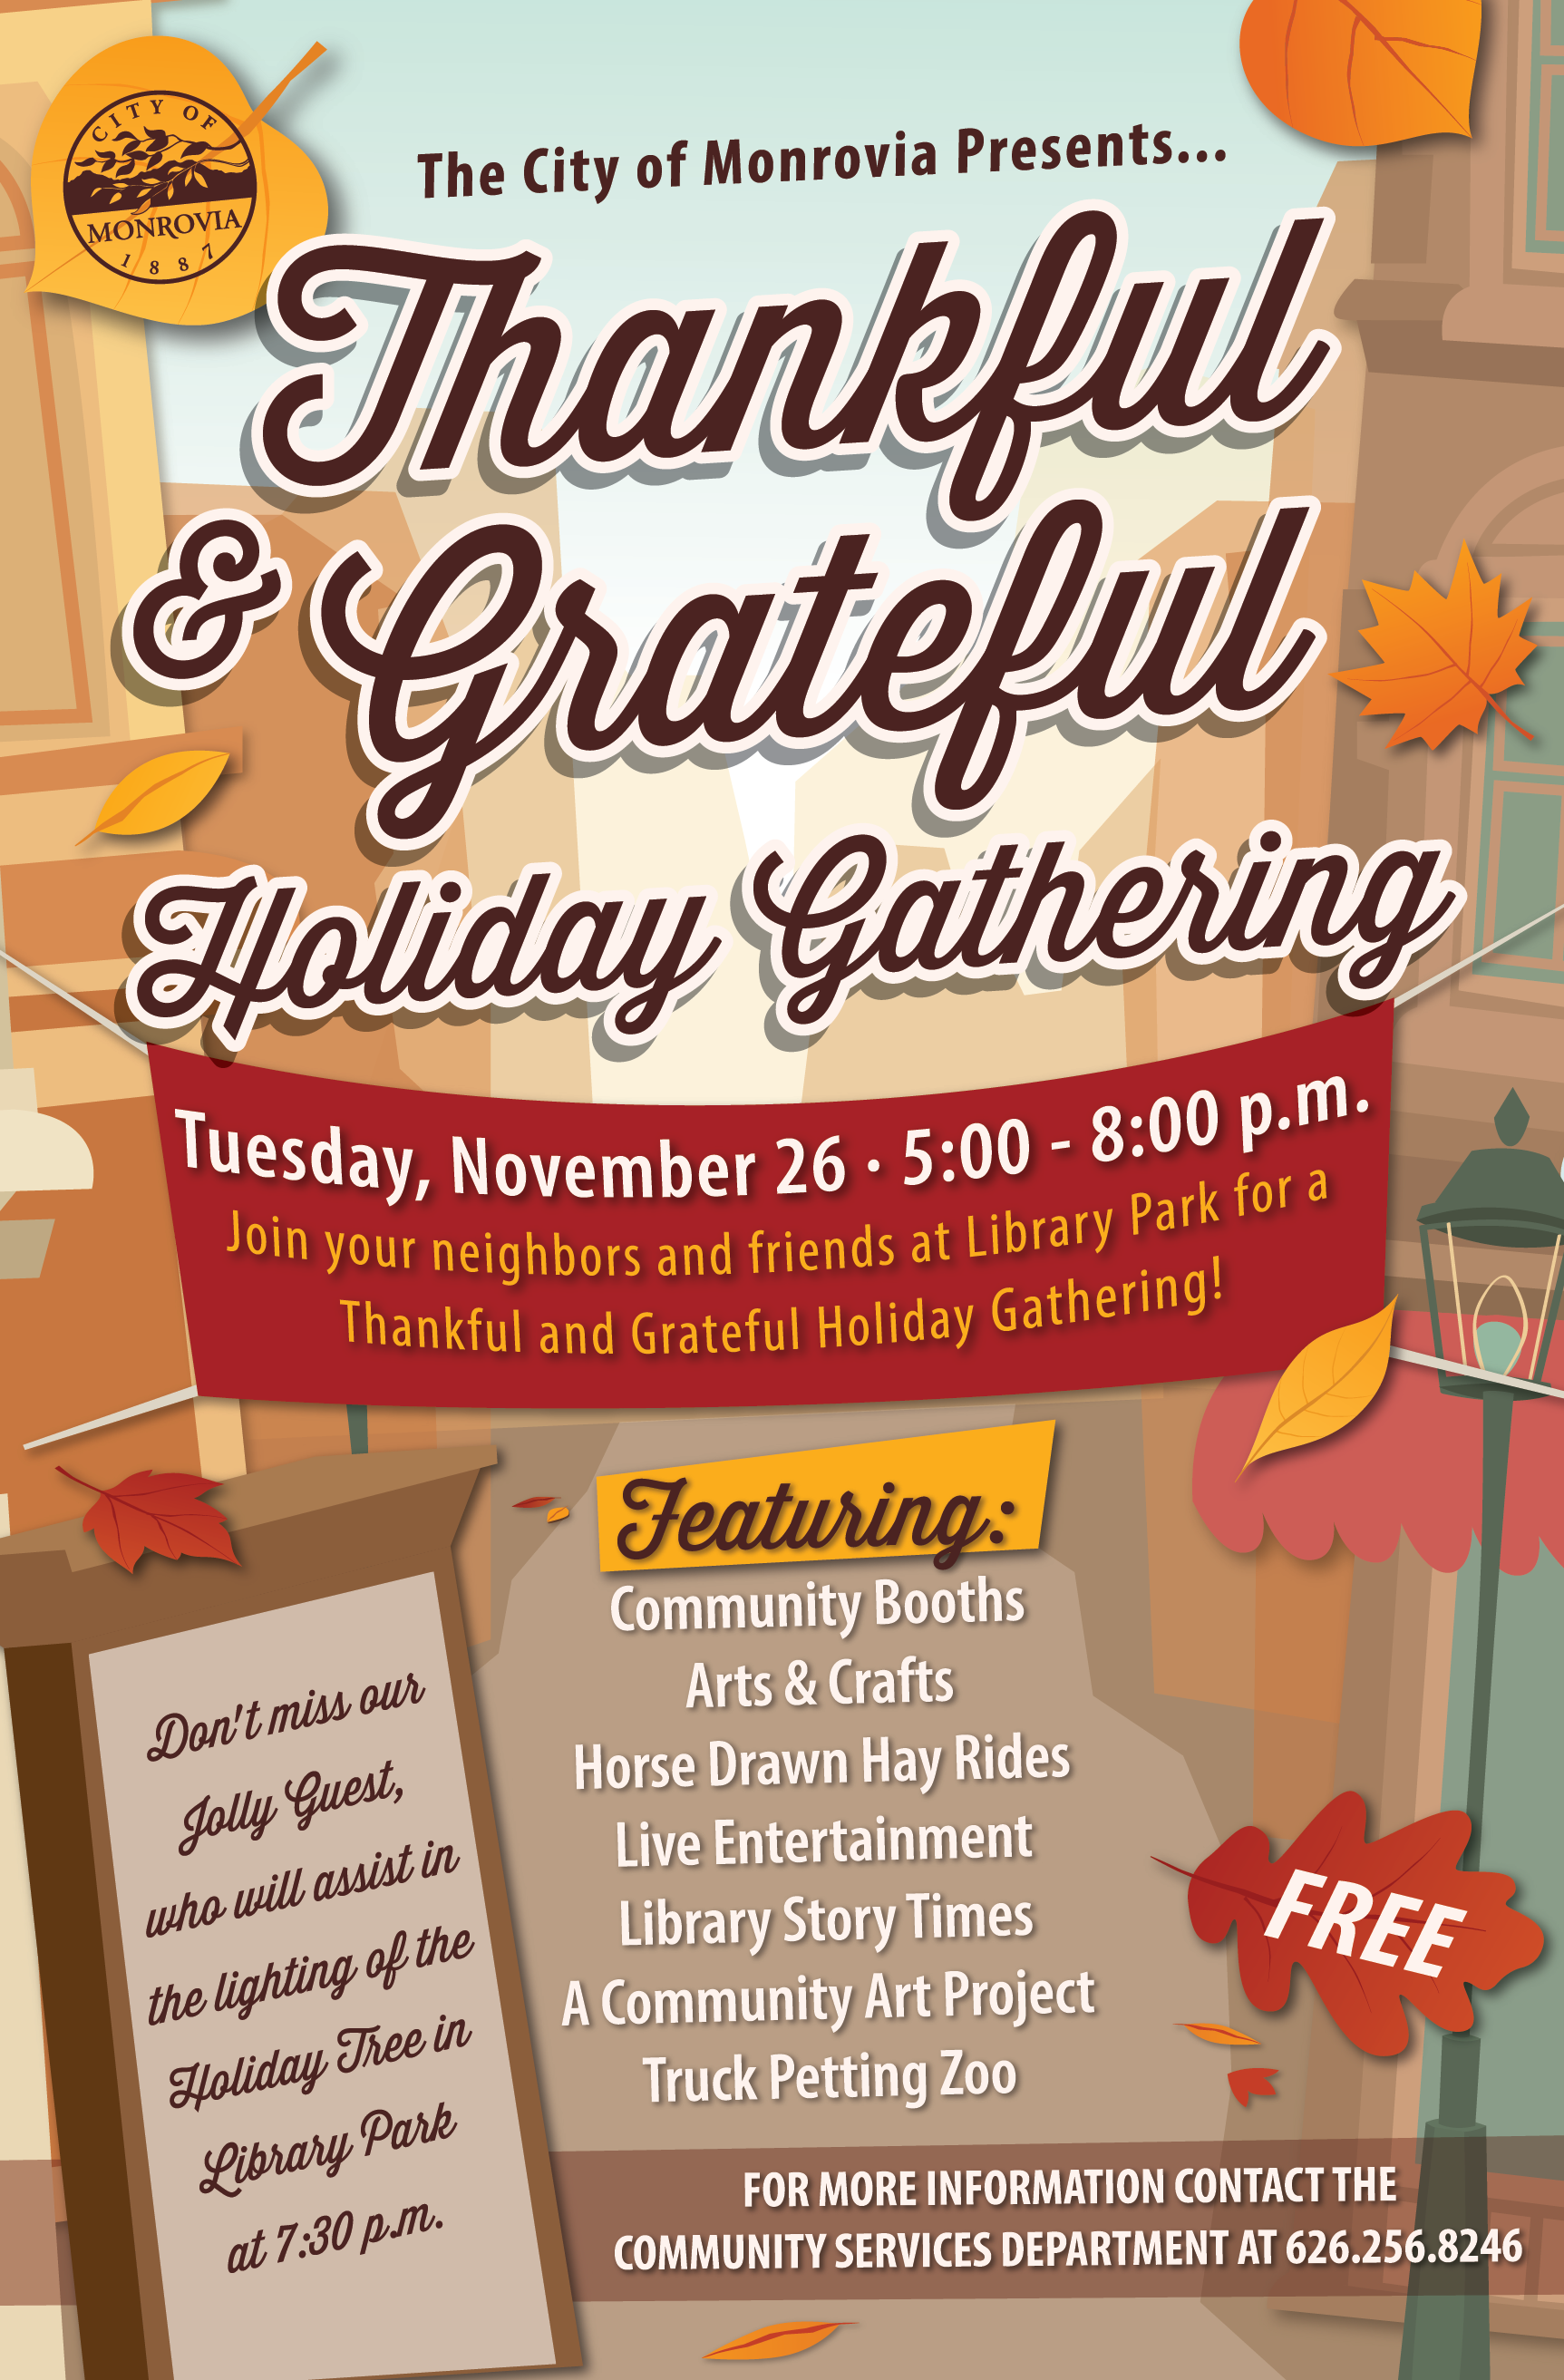 2019 Thankful & Grateful Holiday Gathering